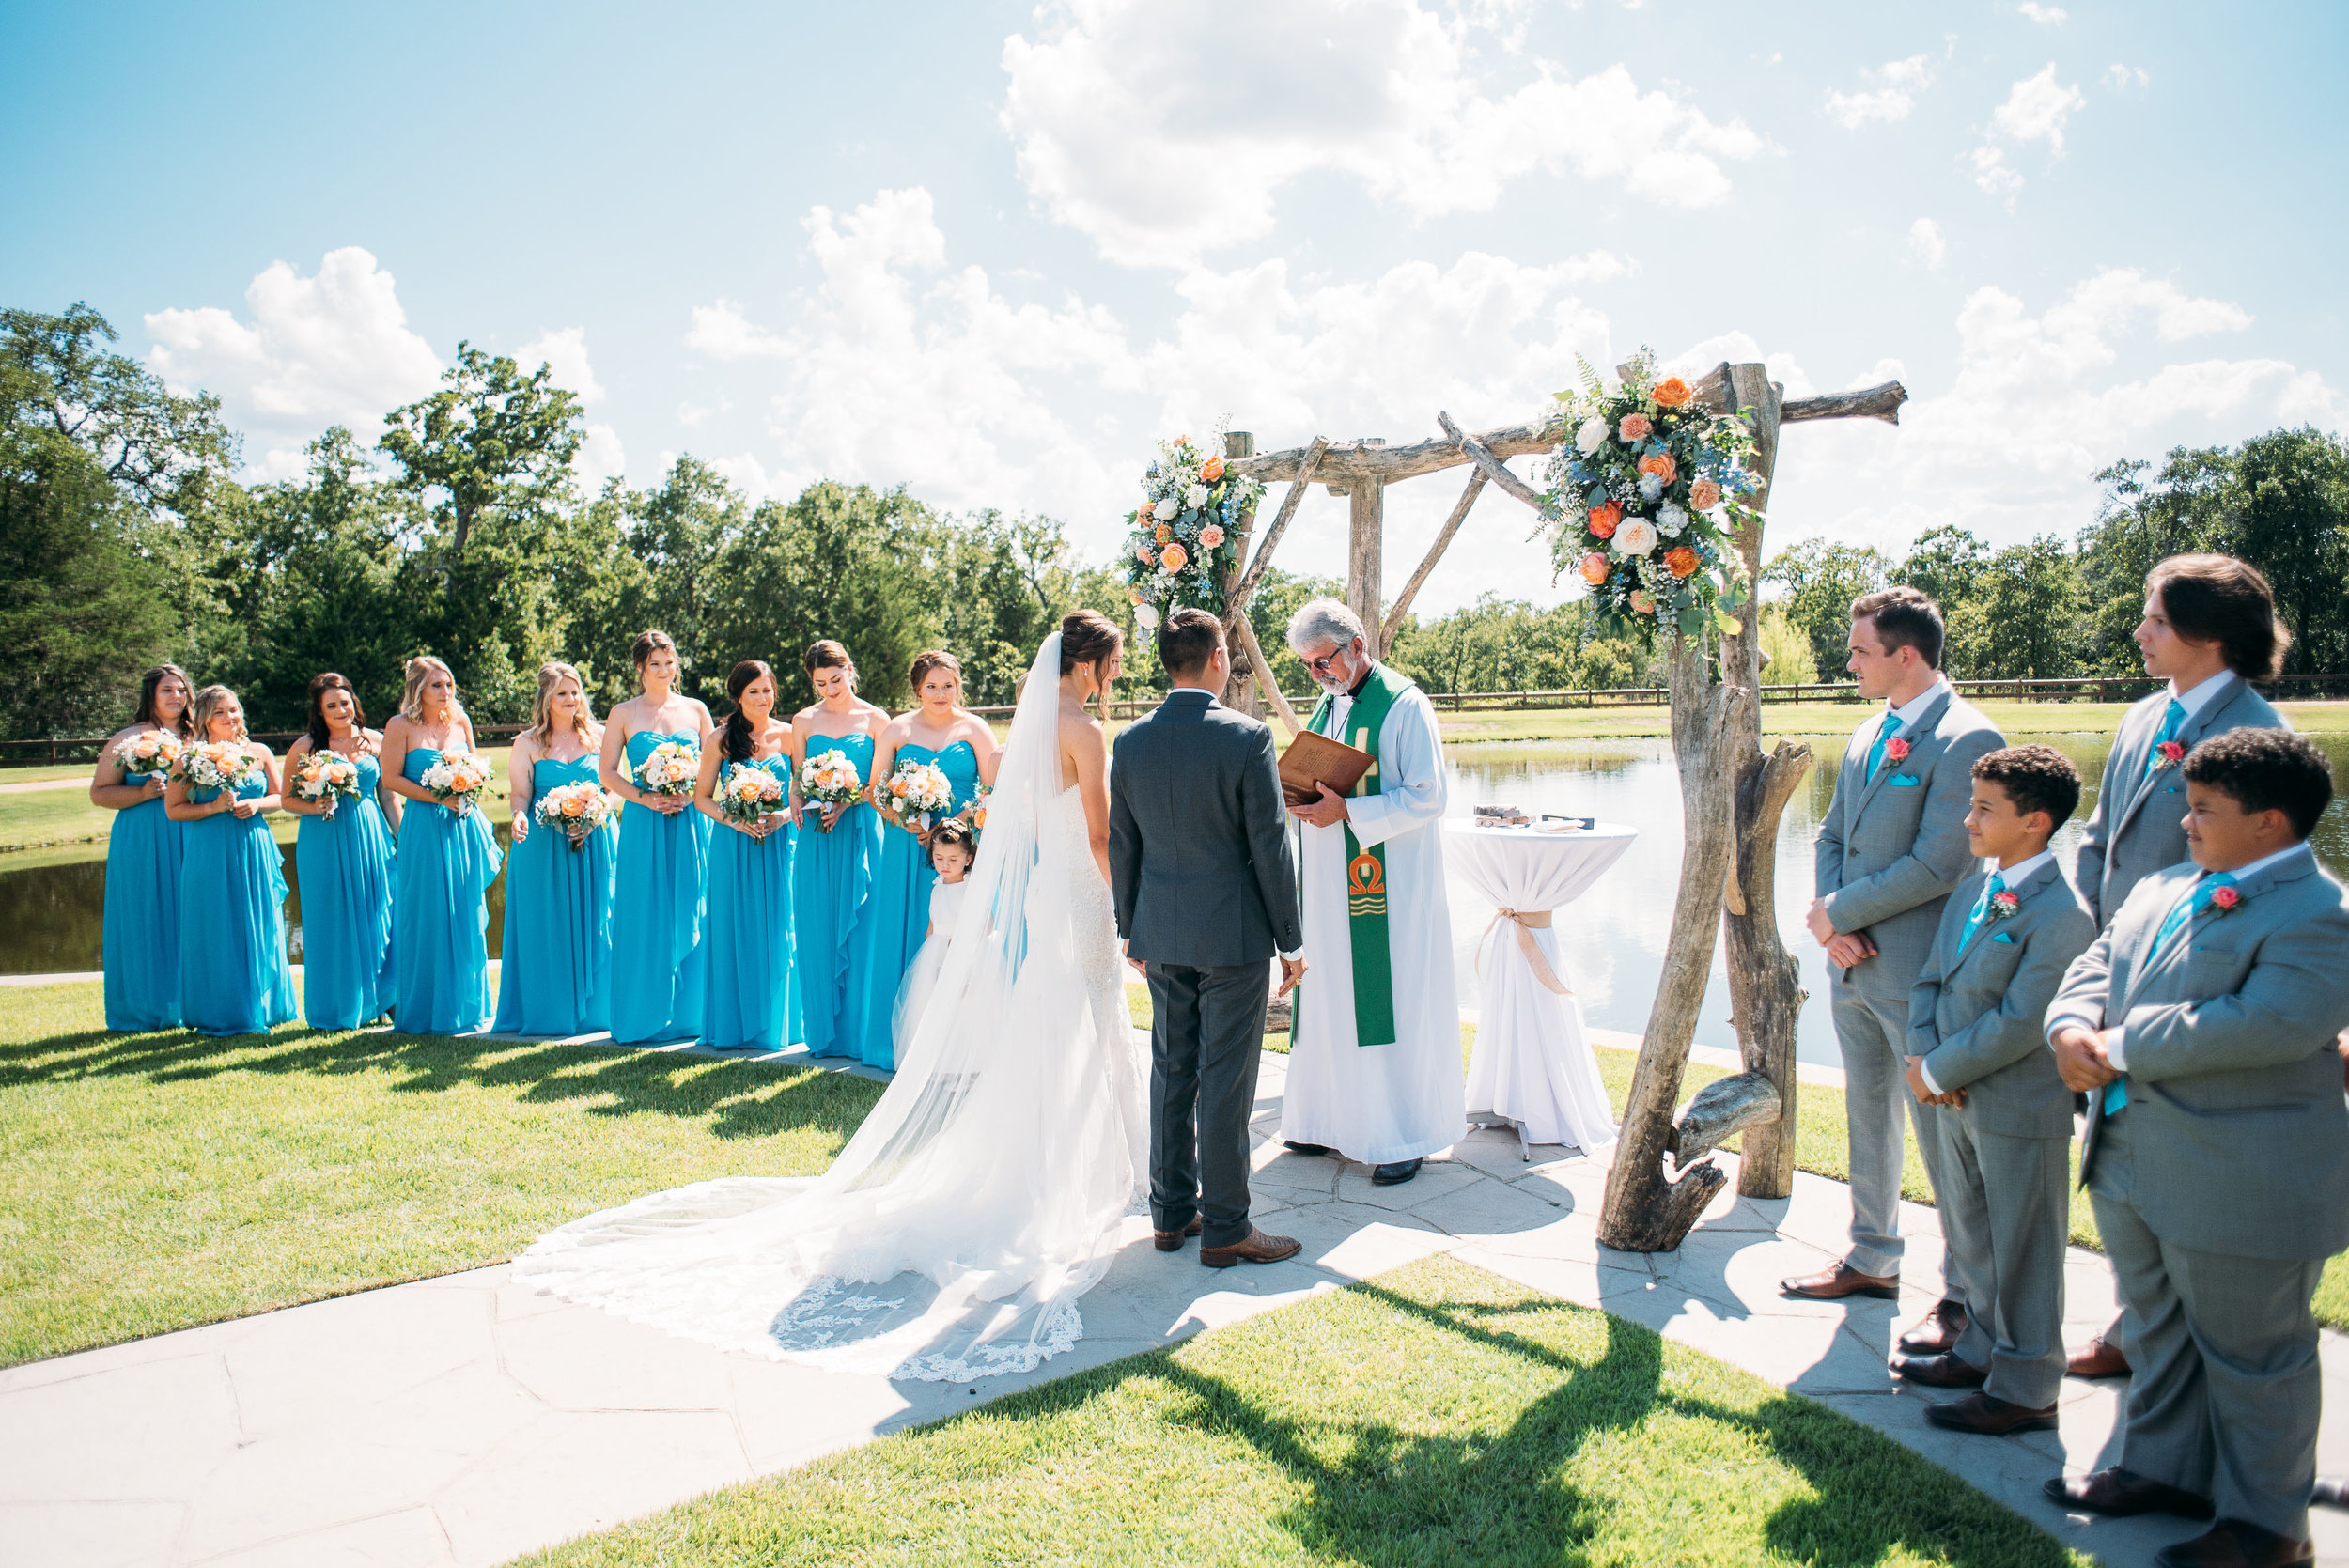 Cameron-Price-Peach-Creek-Ranch-Wedding-Ceremony-Bridals-Engagement-College-Station-Photographer-Videographer-San-Angel-Photo-00-0054.jpg